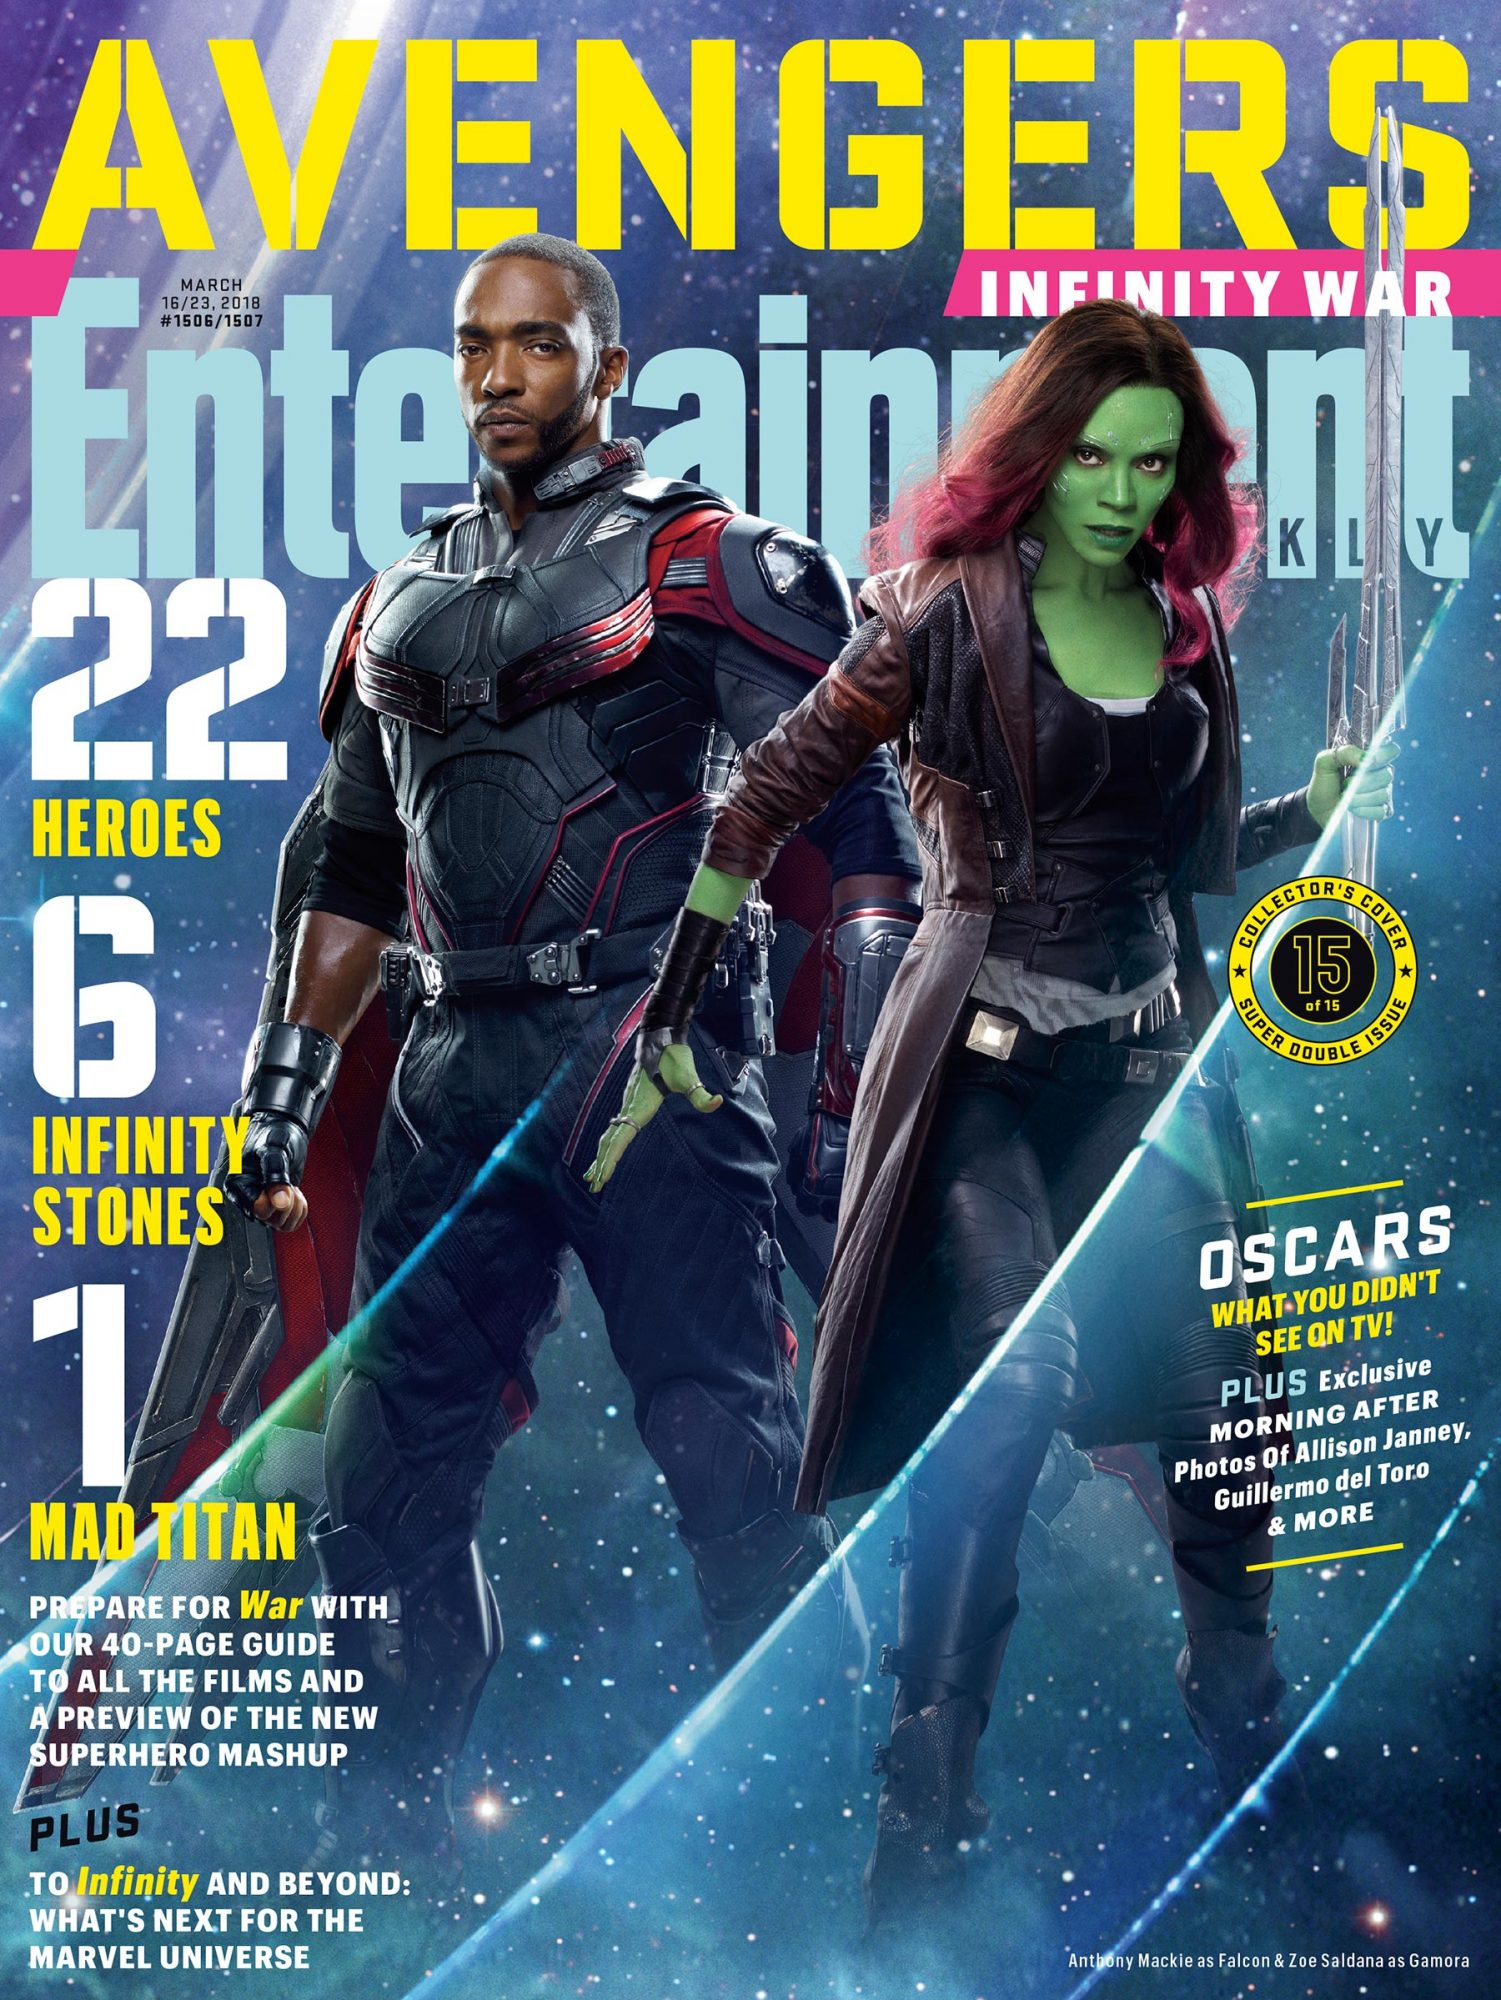 Falcon and Gamora